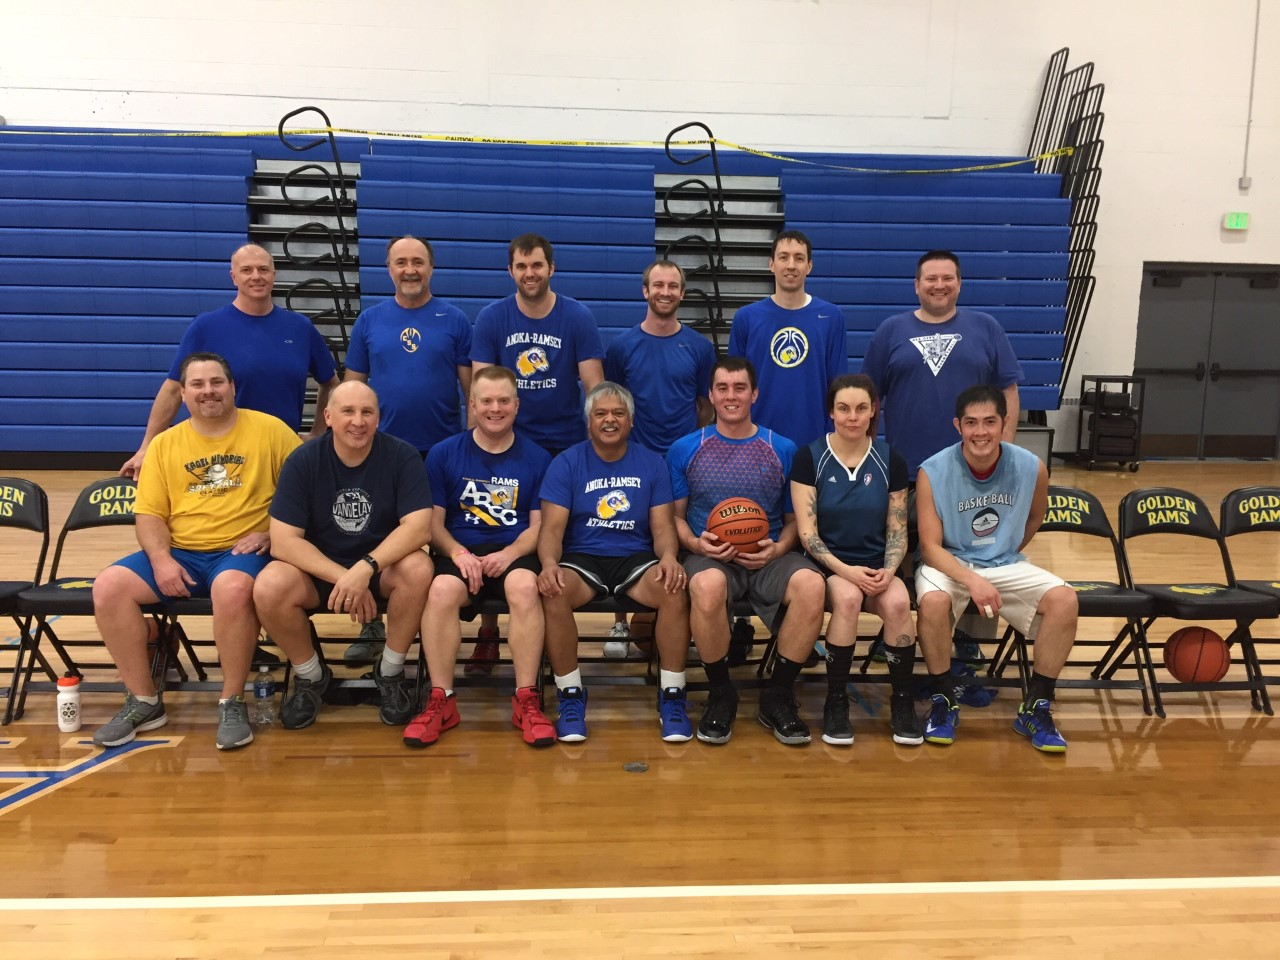 Students Fall to Faculty and Staff in Annual Match Up